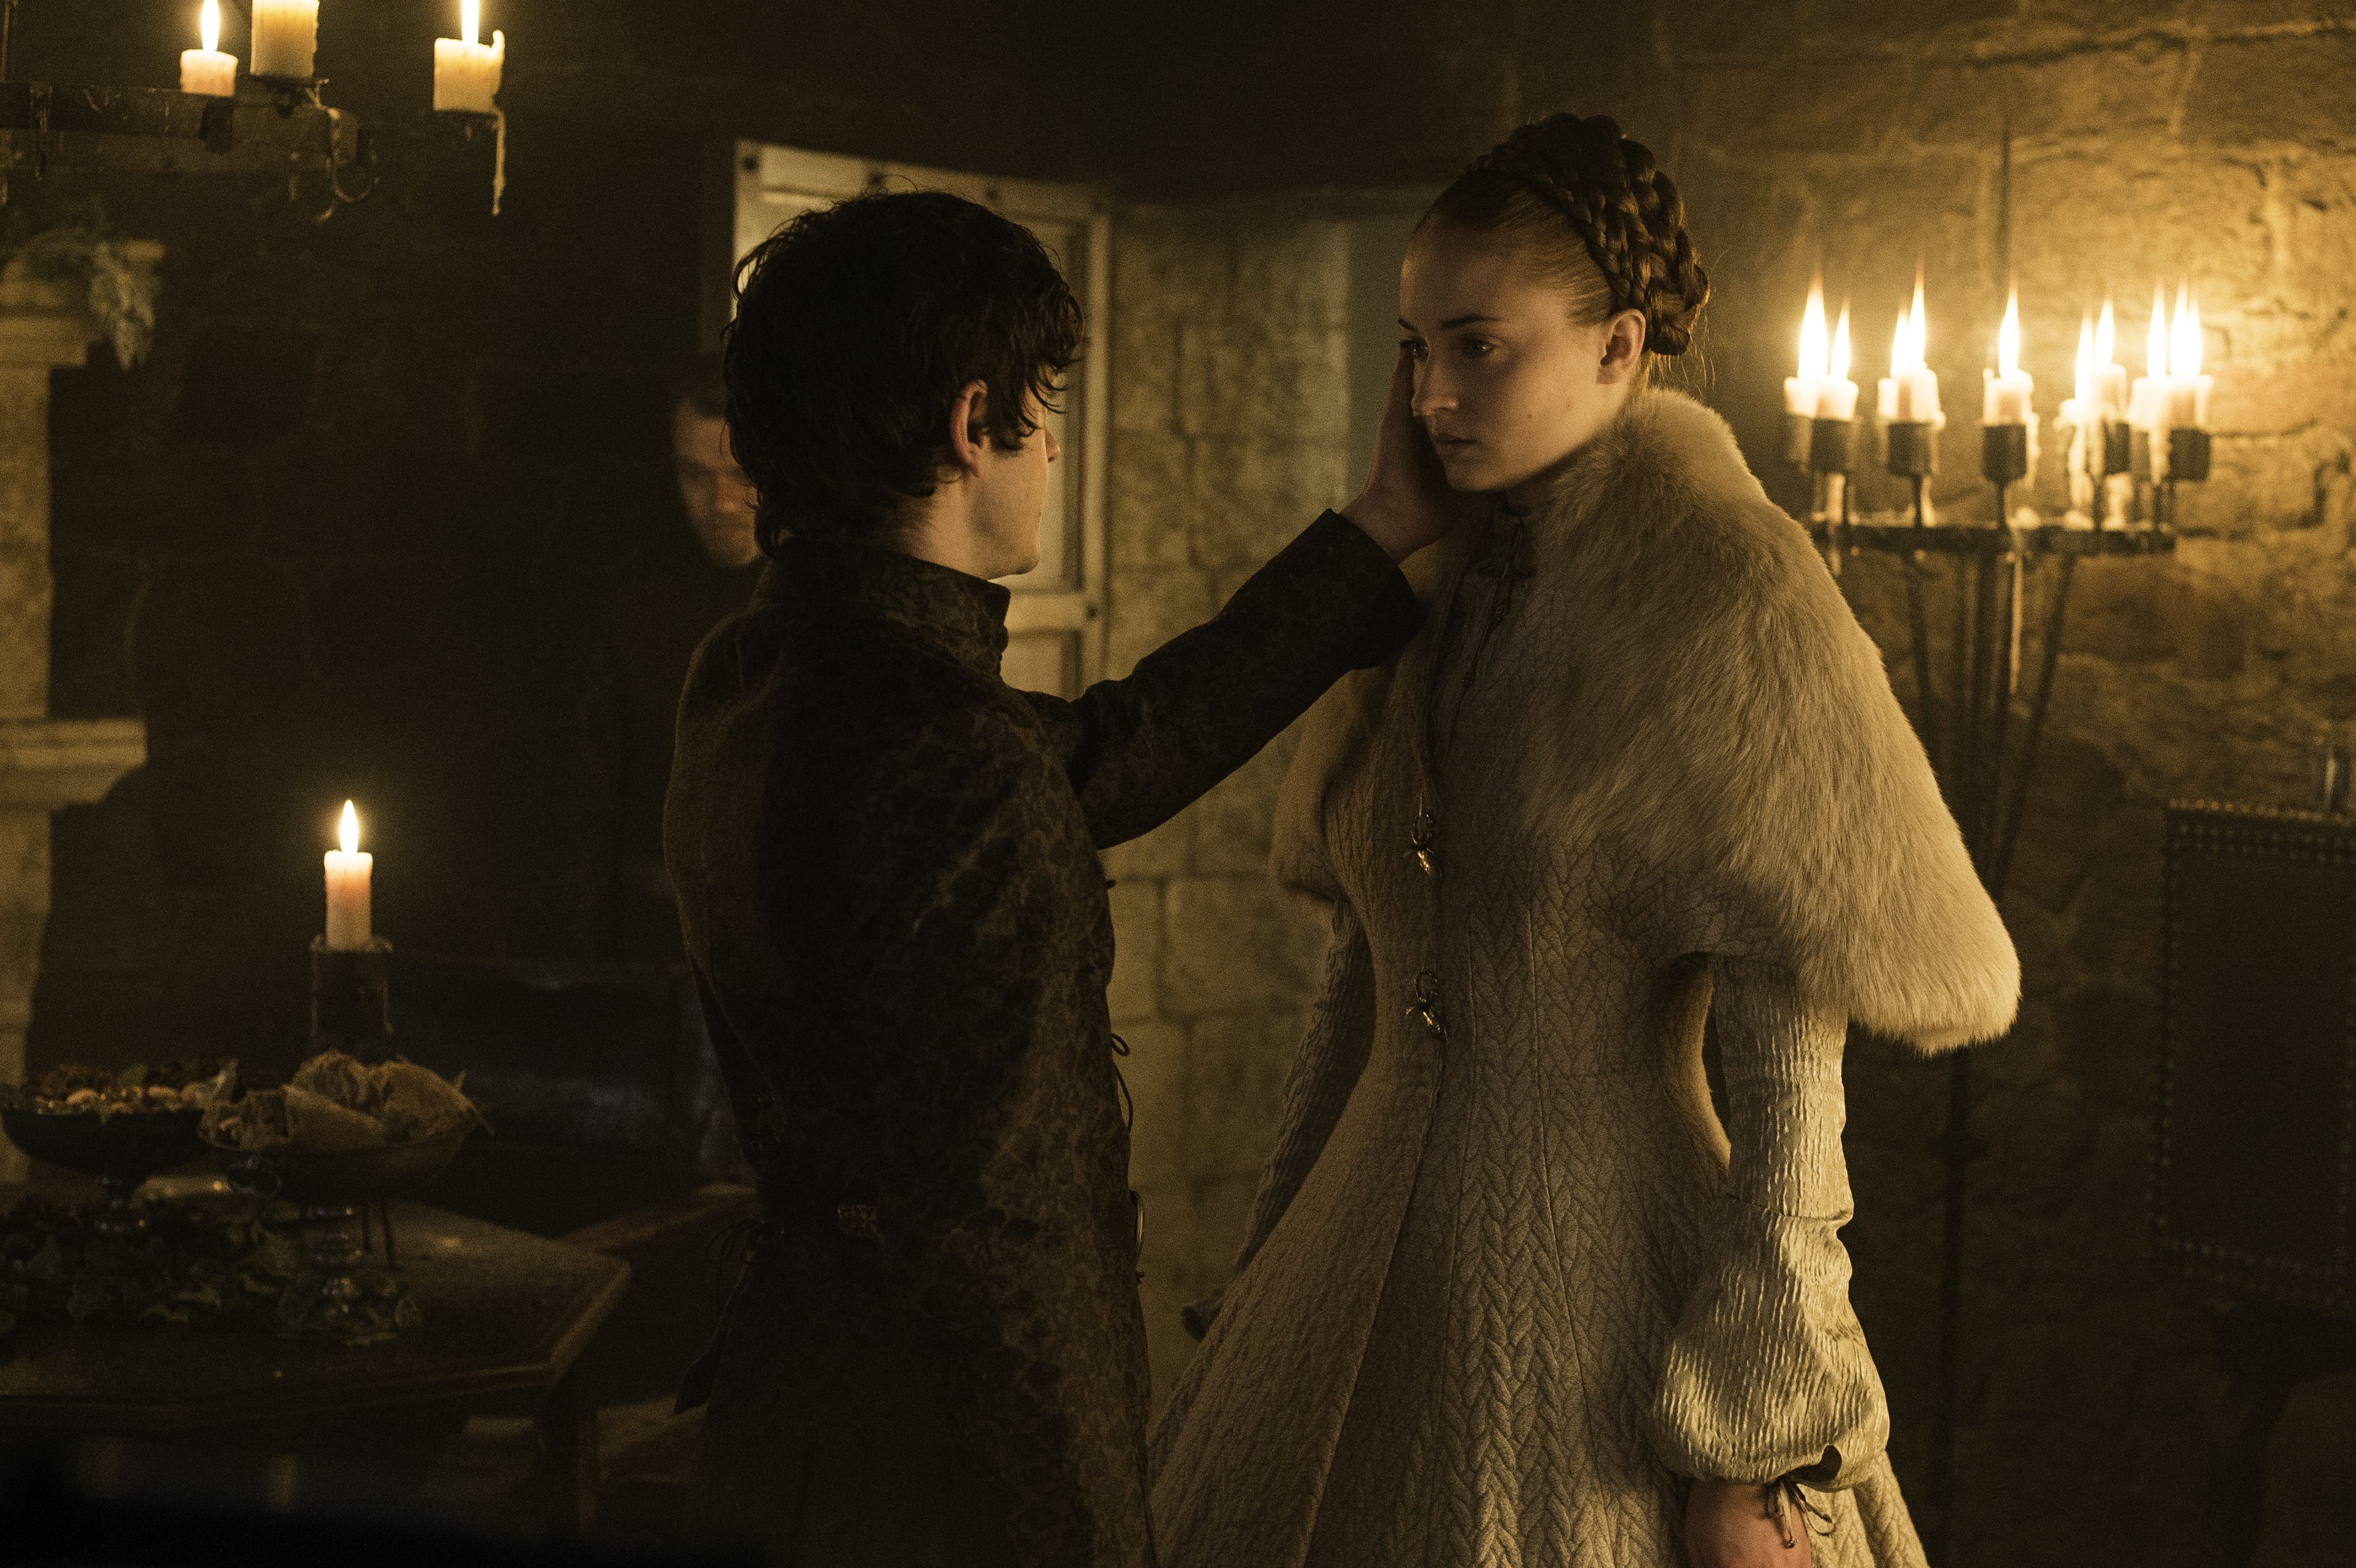 """This redditor just came up with the most DEPRESSING theory about Sansa in """"Game of Thrones"""""""